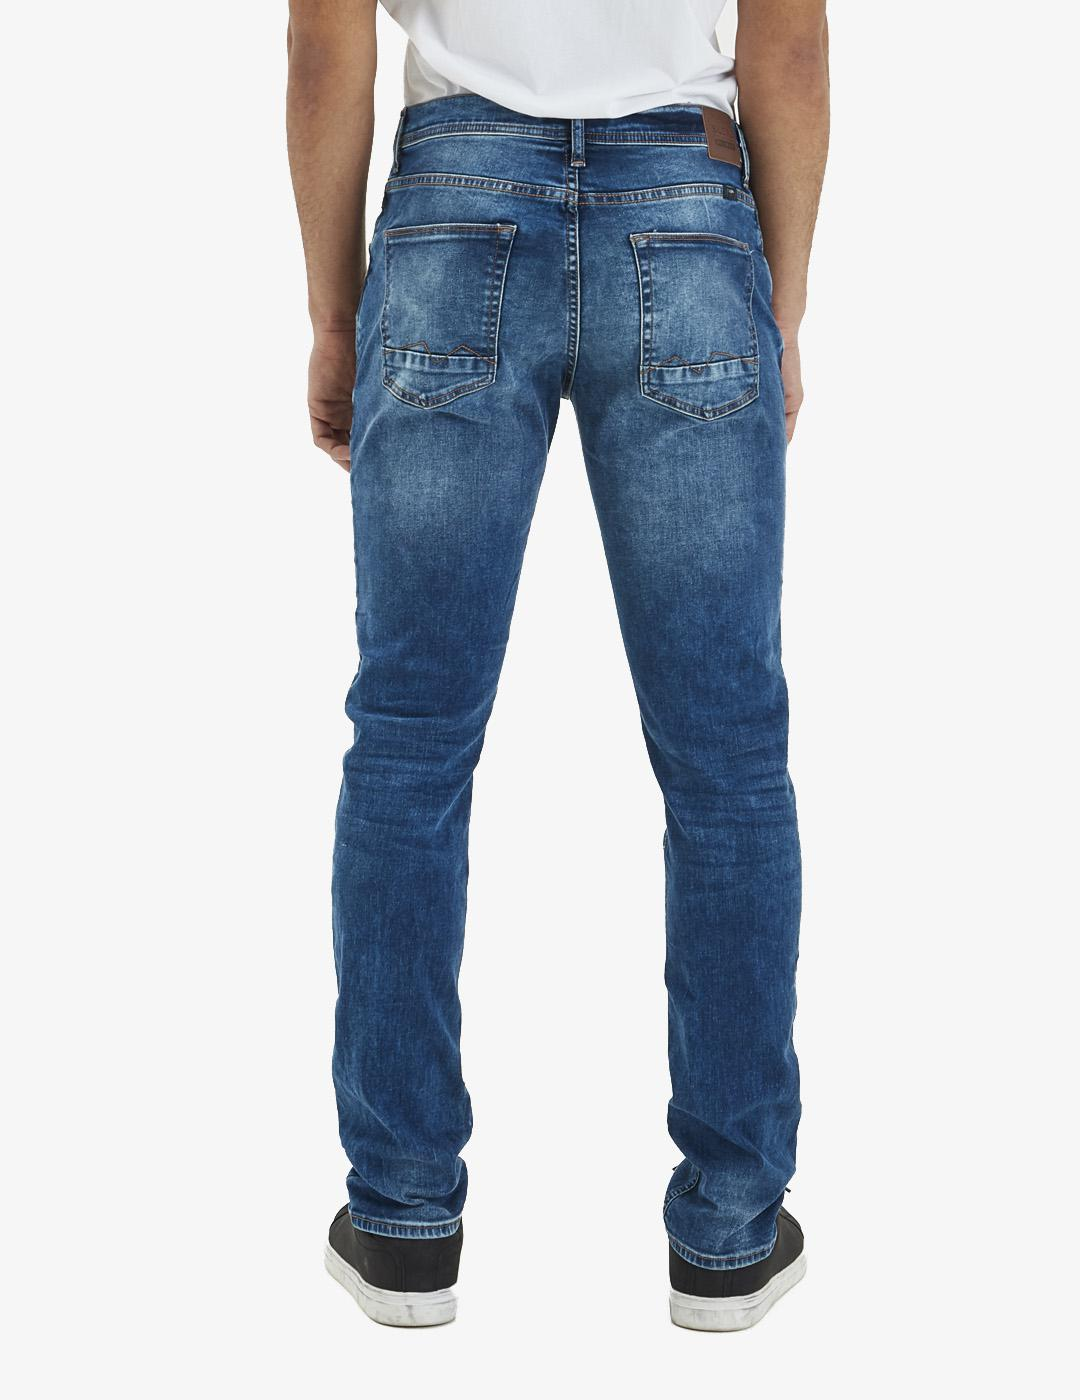 Pantalón 9689 CLEAN - Denim Middle blue